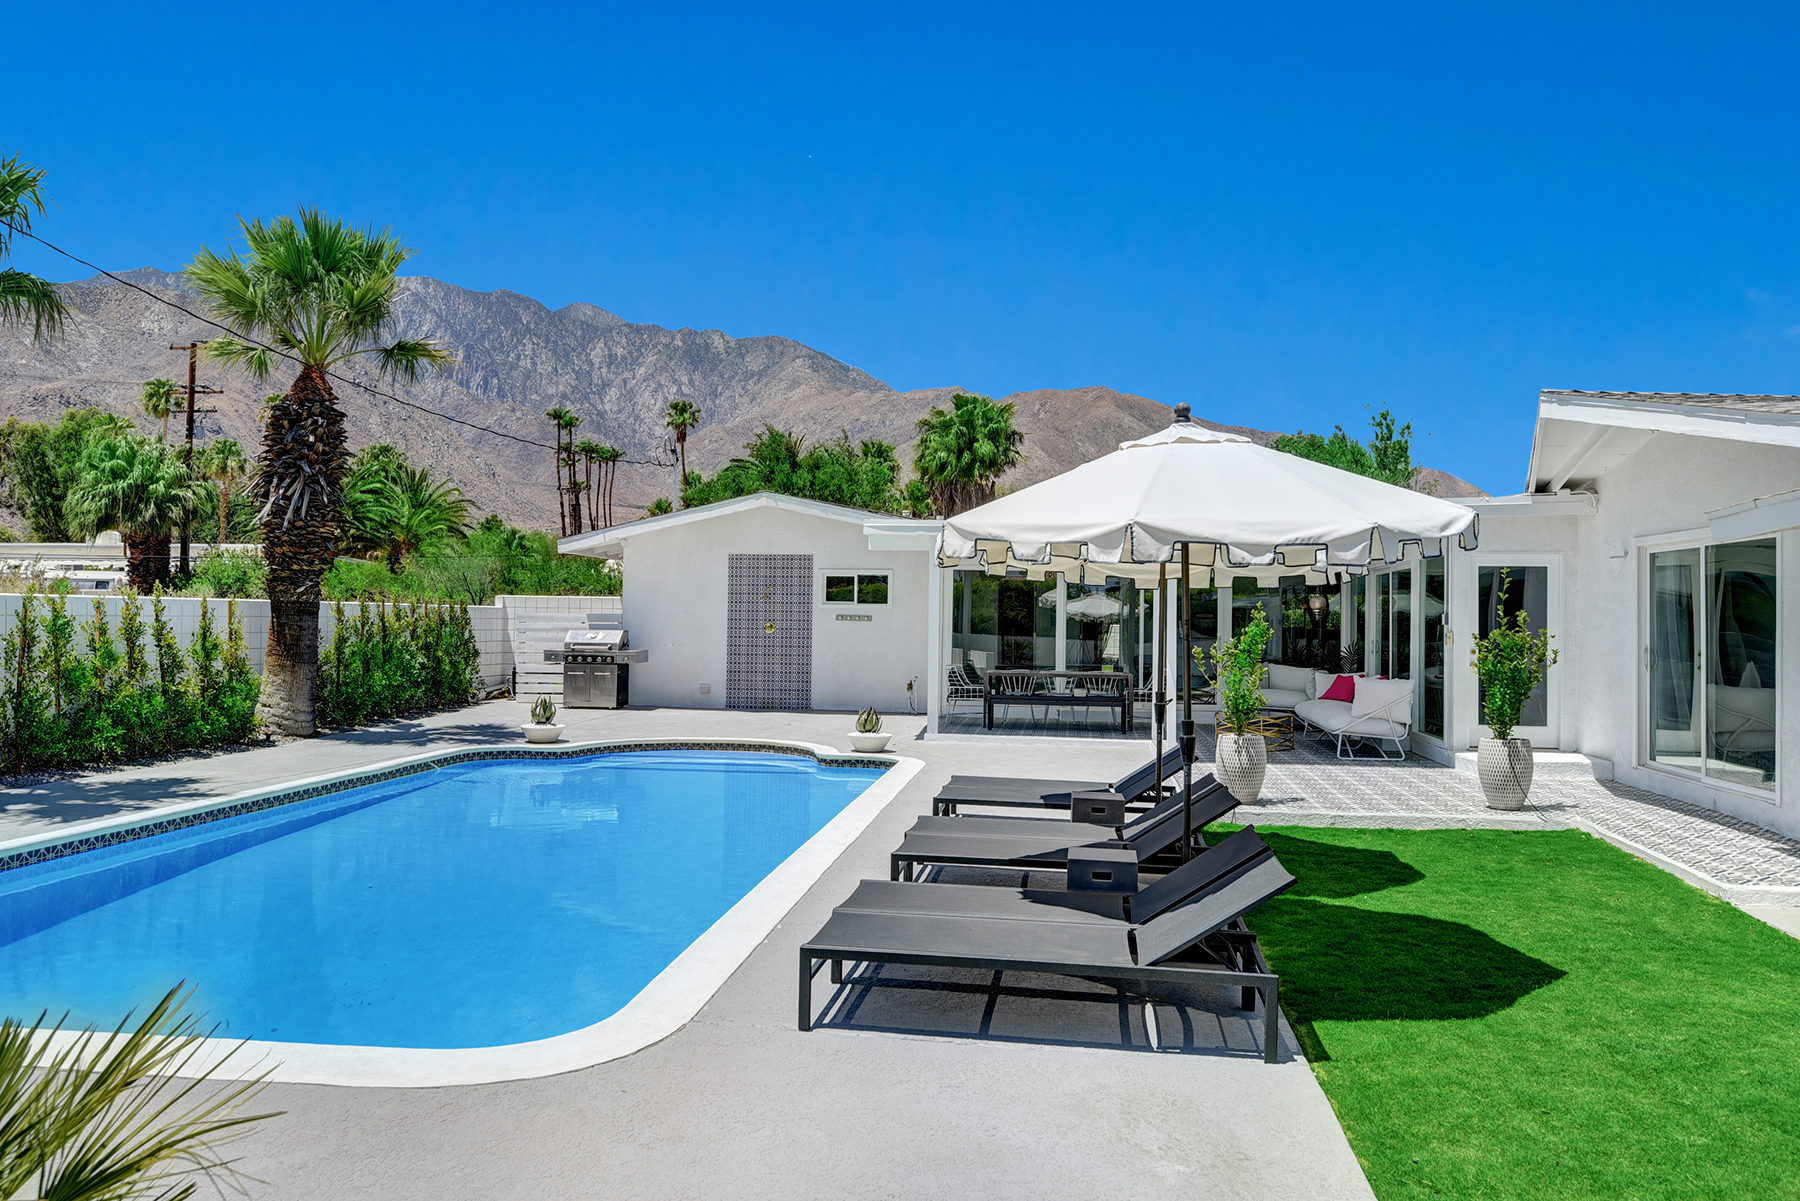 POOL AND CHAISES TO HOUSE AND MOUNTAINS RS.jpg